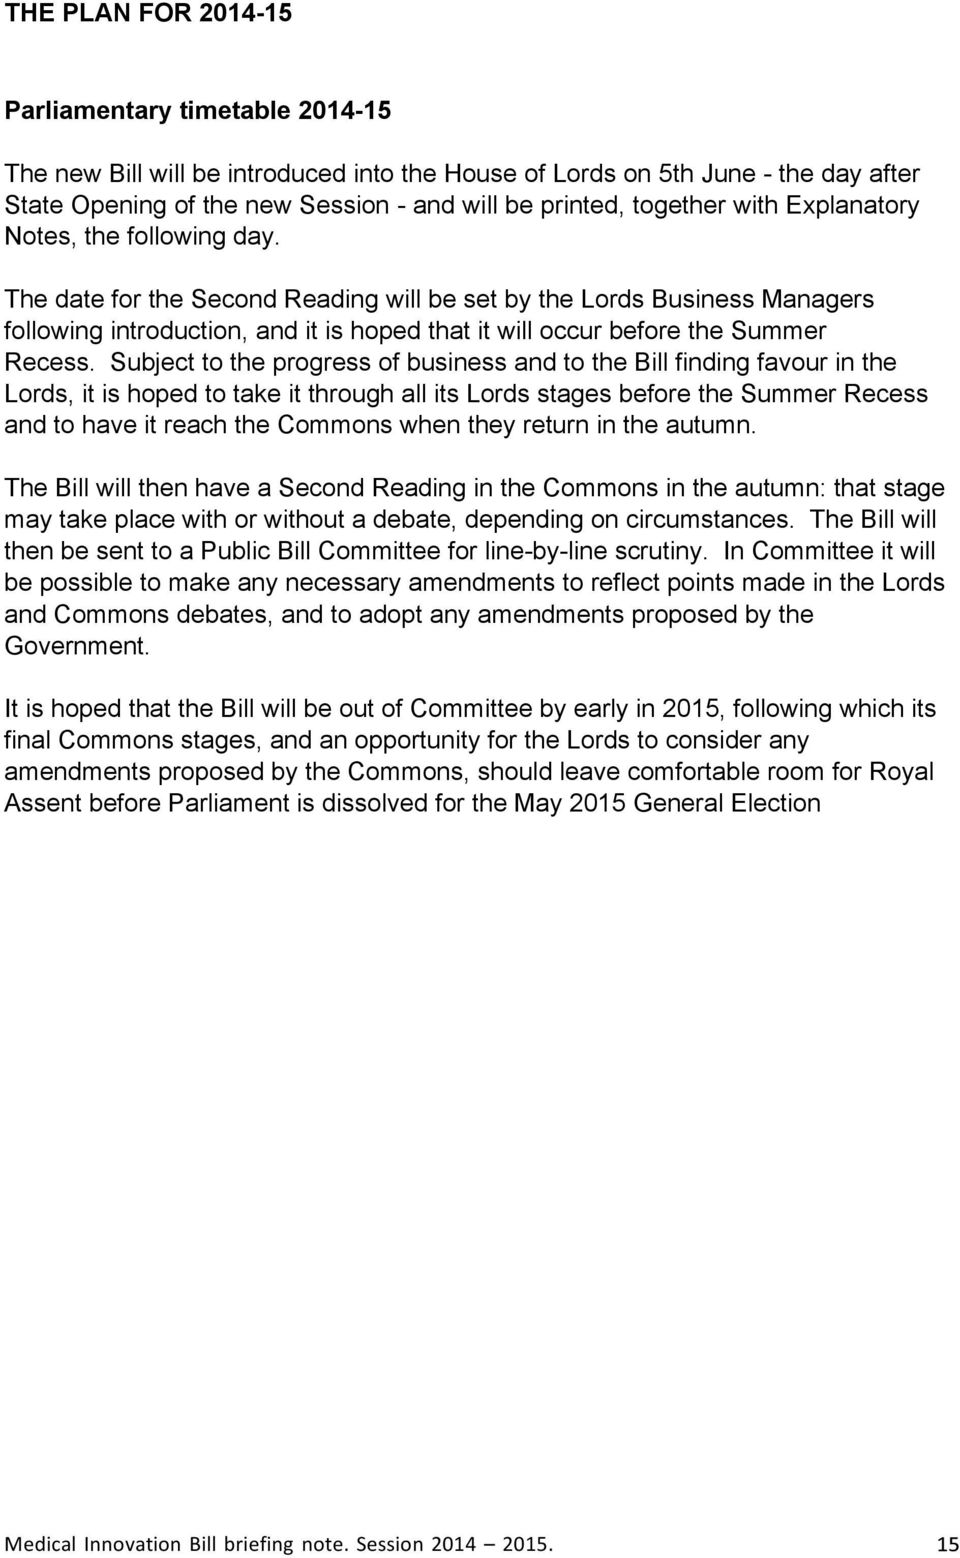 The date for the Second Reading will be set by the Lords Business Managers following introduction, and it is hoped that it will occur before the Summer Recess.